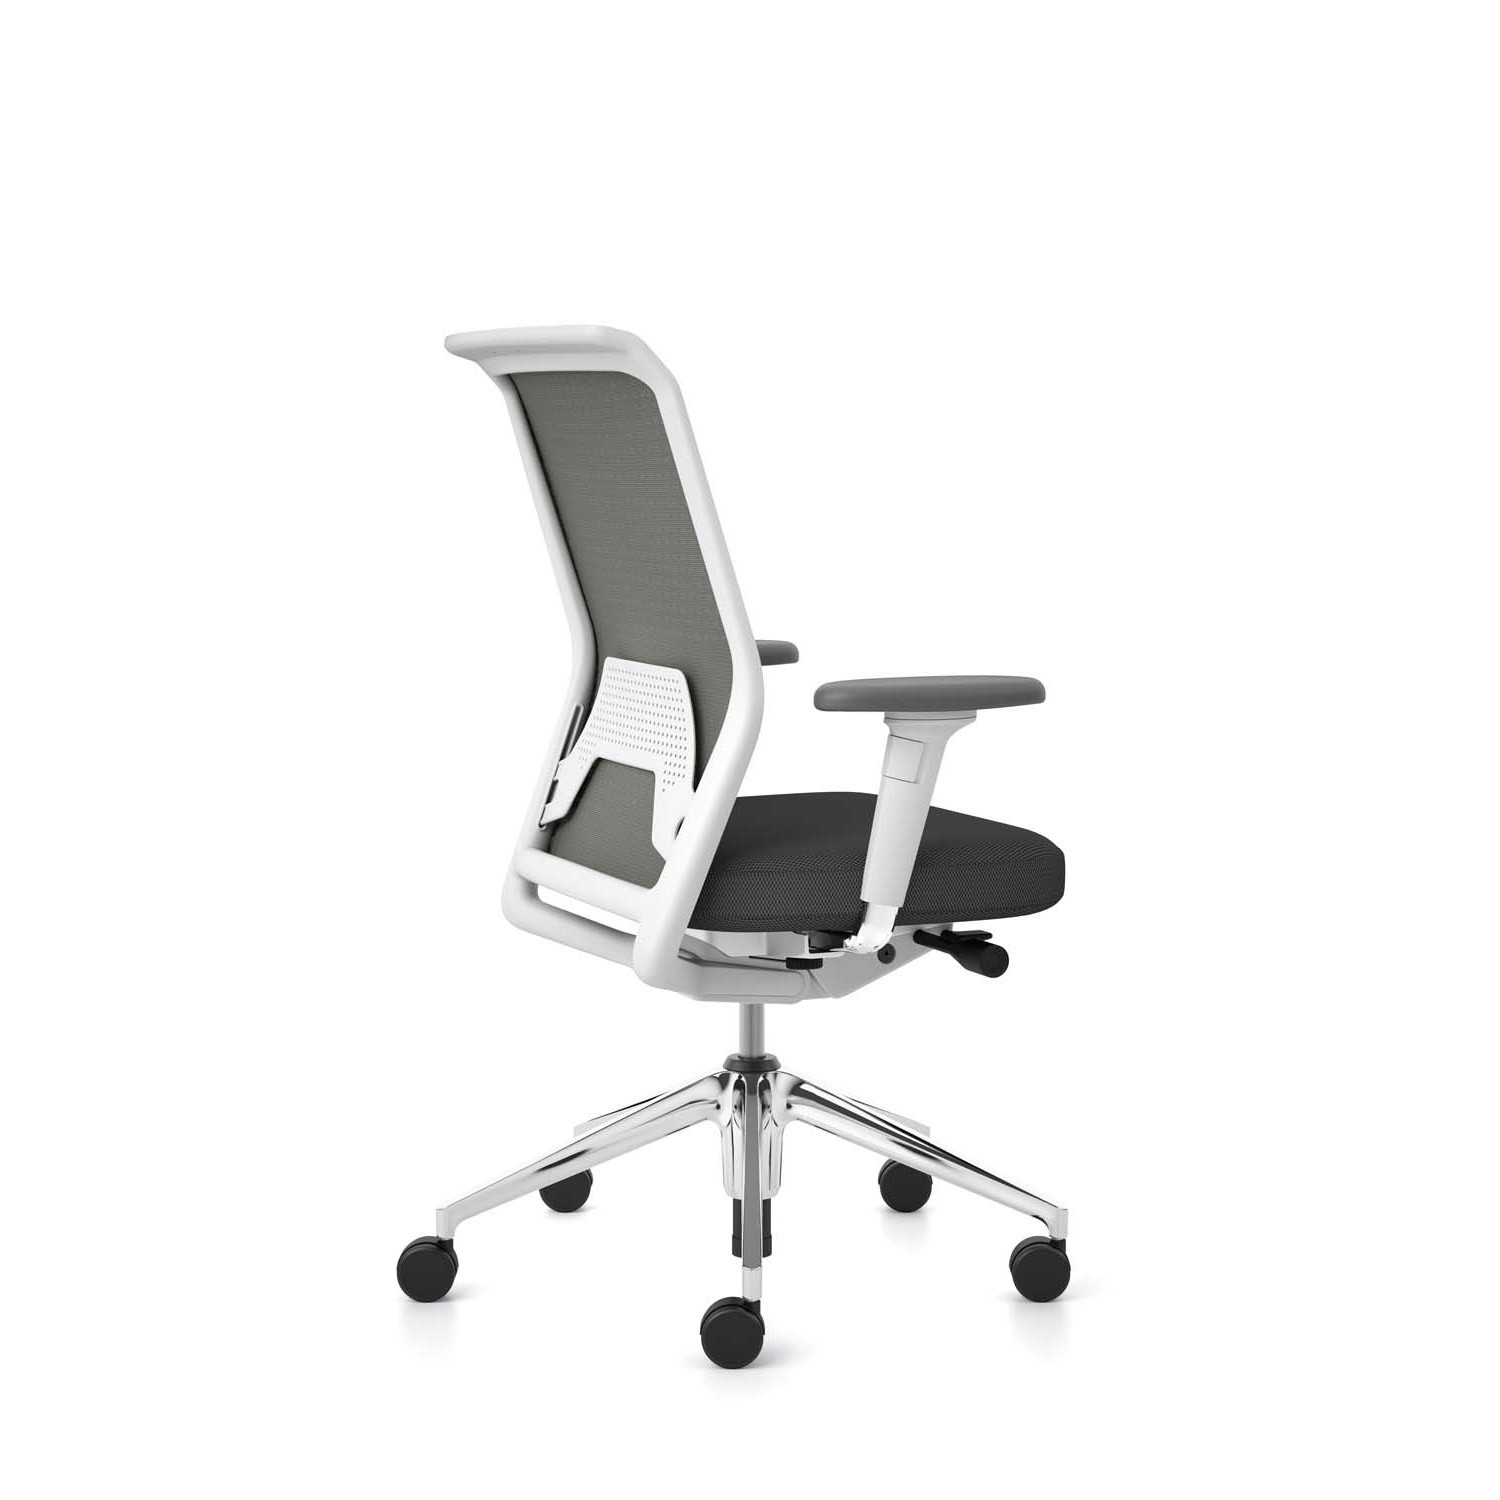 ID Mesh Office Chair Backrest View